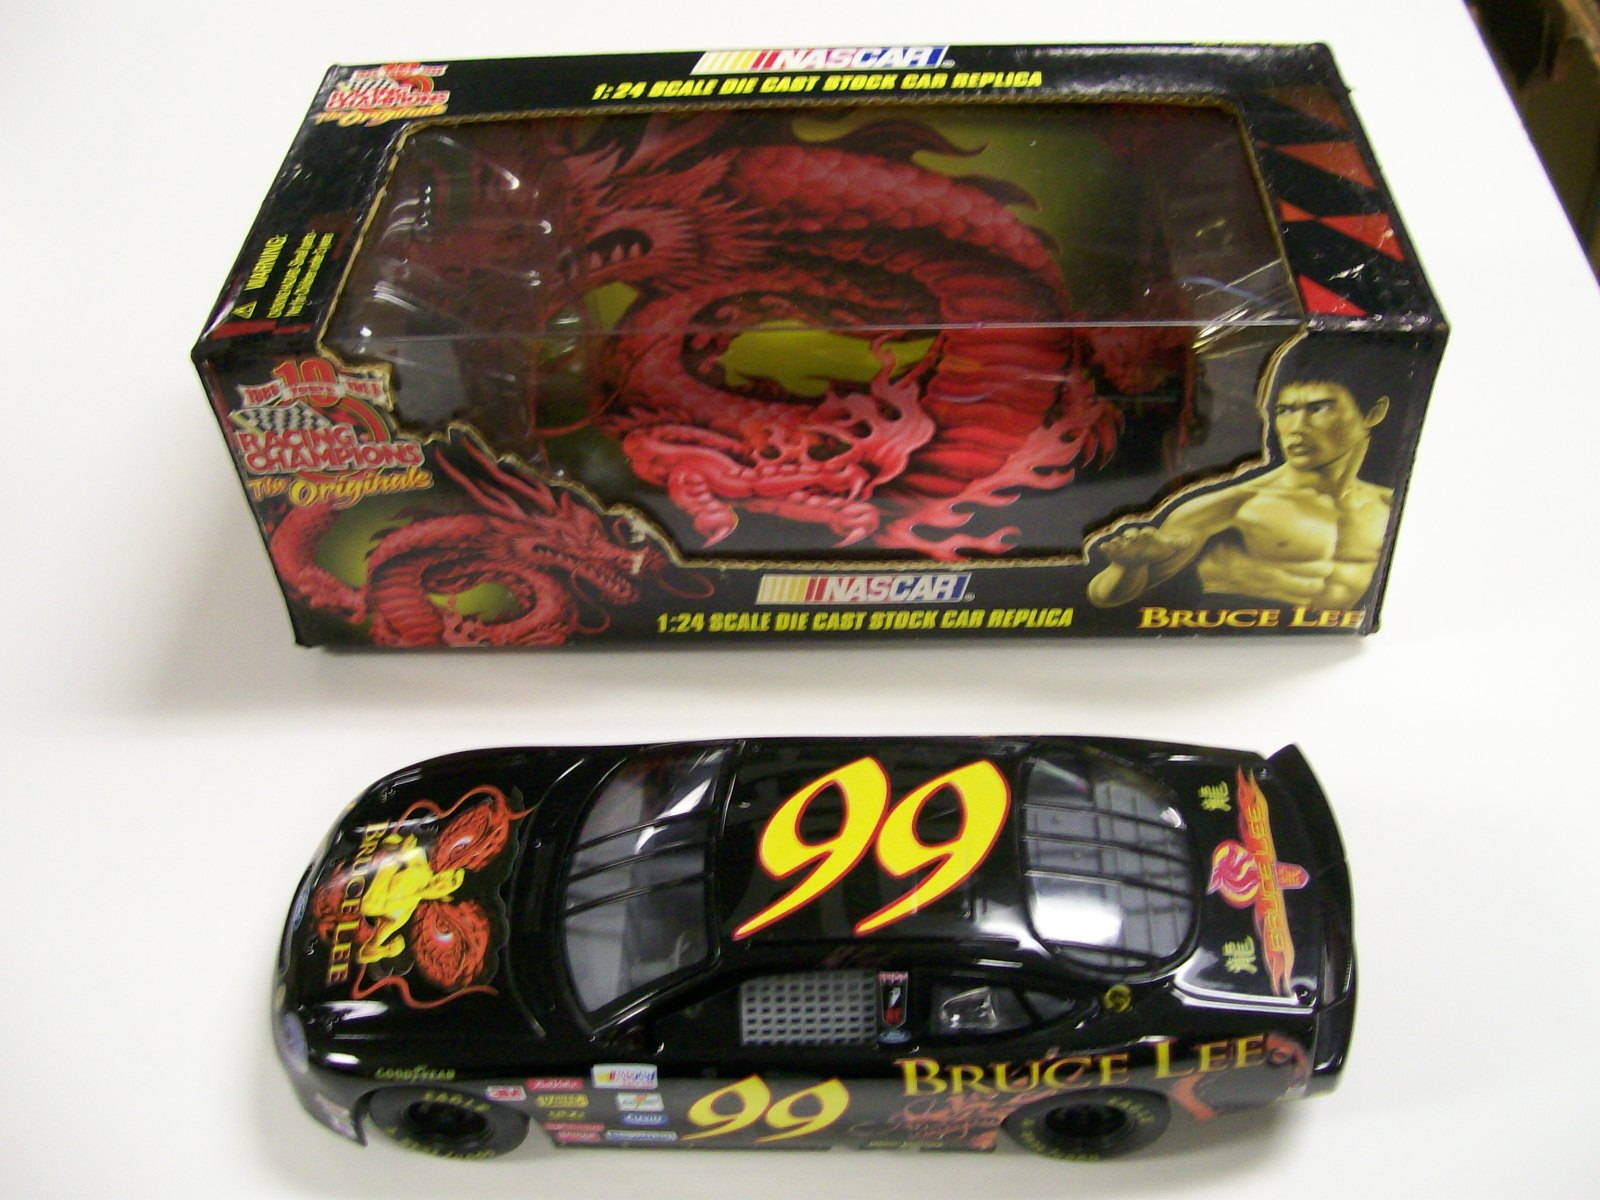 Bruce Lee 1/24 Scale die cast Stock Car Replica 1999